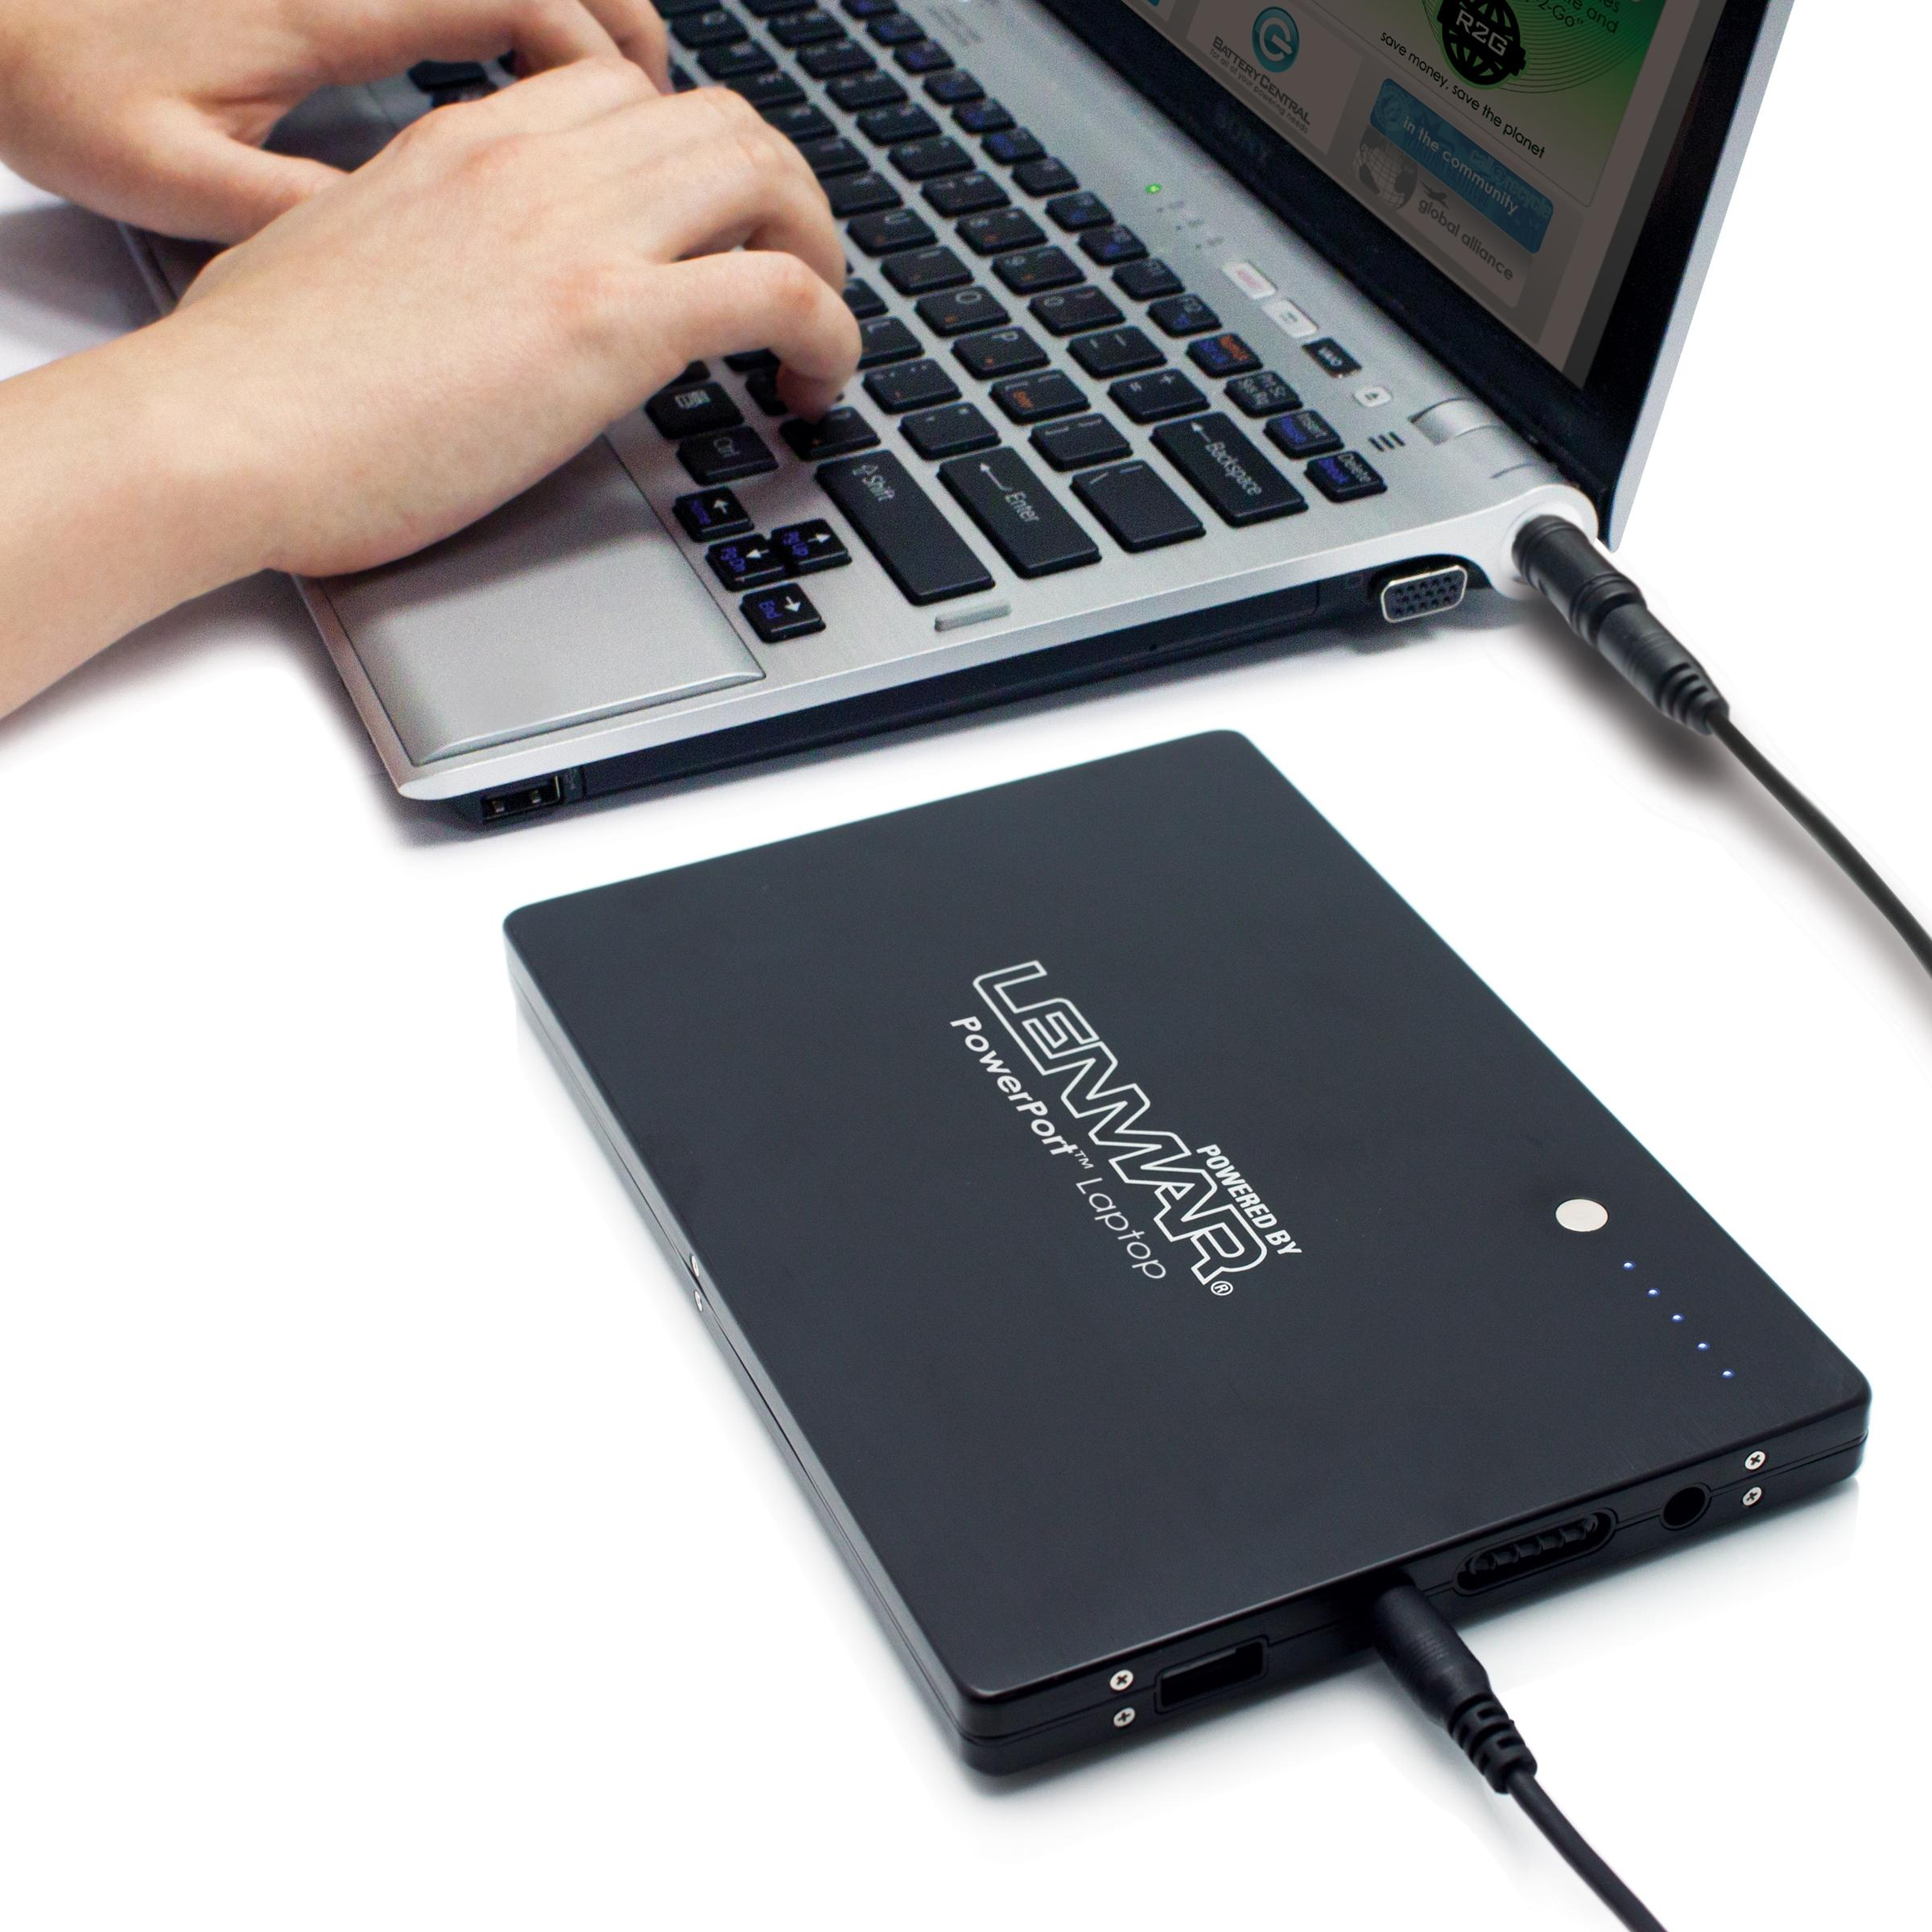 lenmar powerport notebook portable battery and charger ppu916rs computers tablets. Black Bedroom Furniture Sets. Home Design Ideas